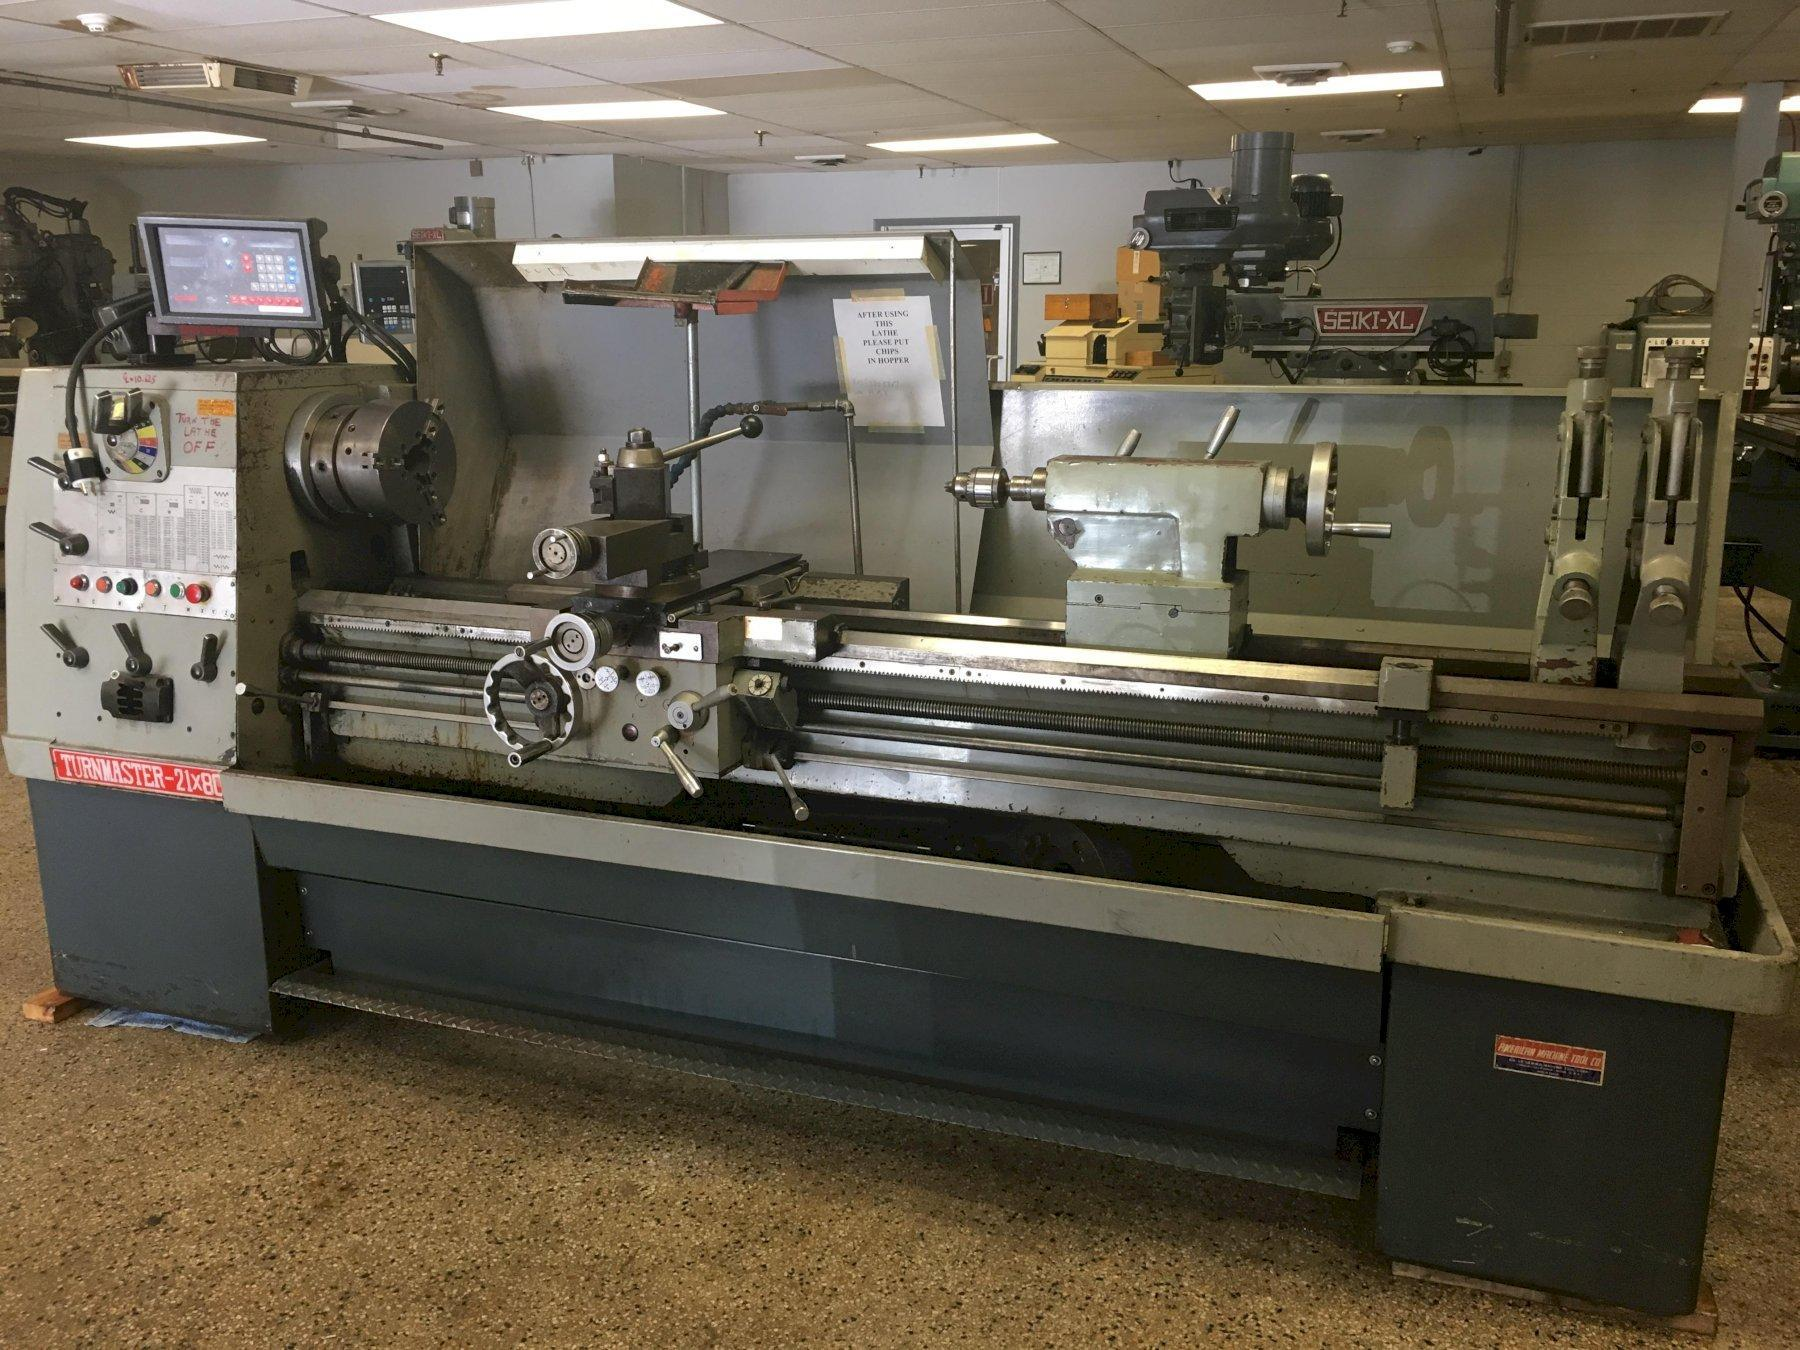 "Turnmaster 21"" x 80"" Engine Lathe, Serial #21894040519, New approx 1994."